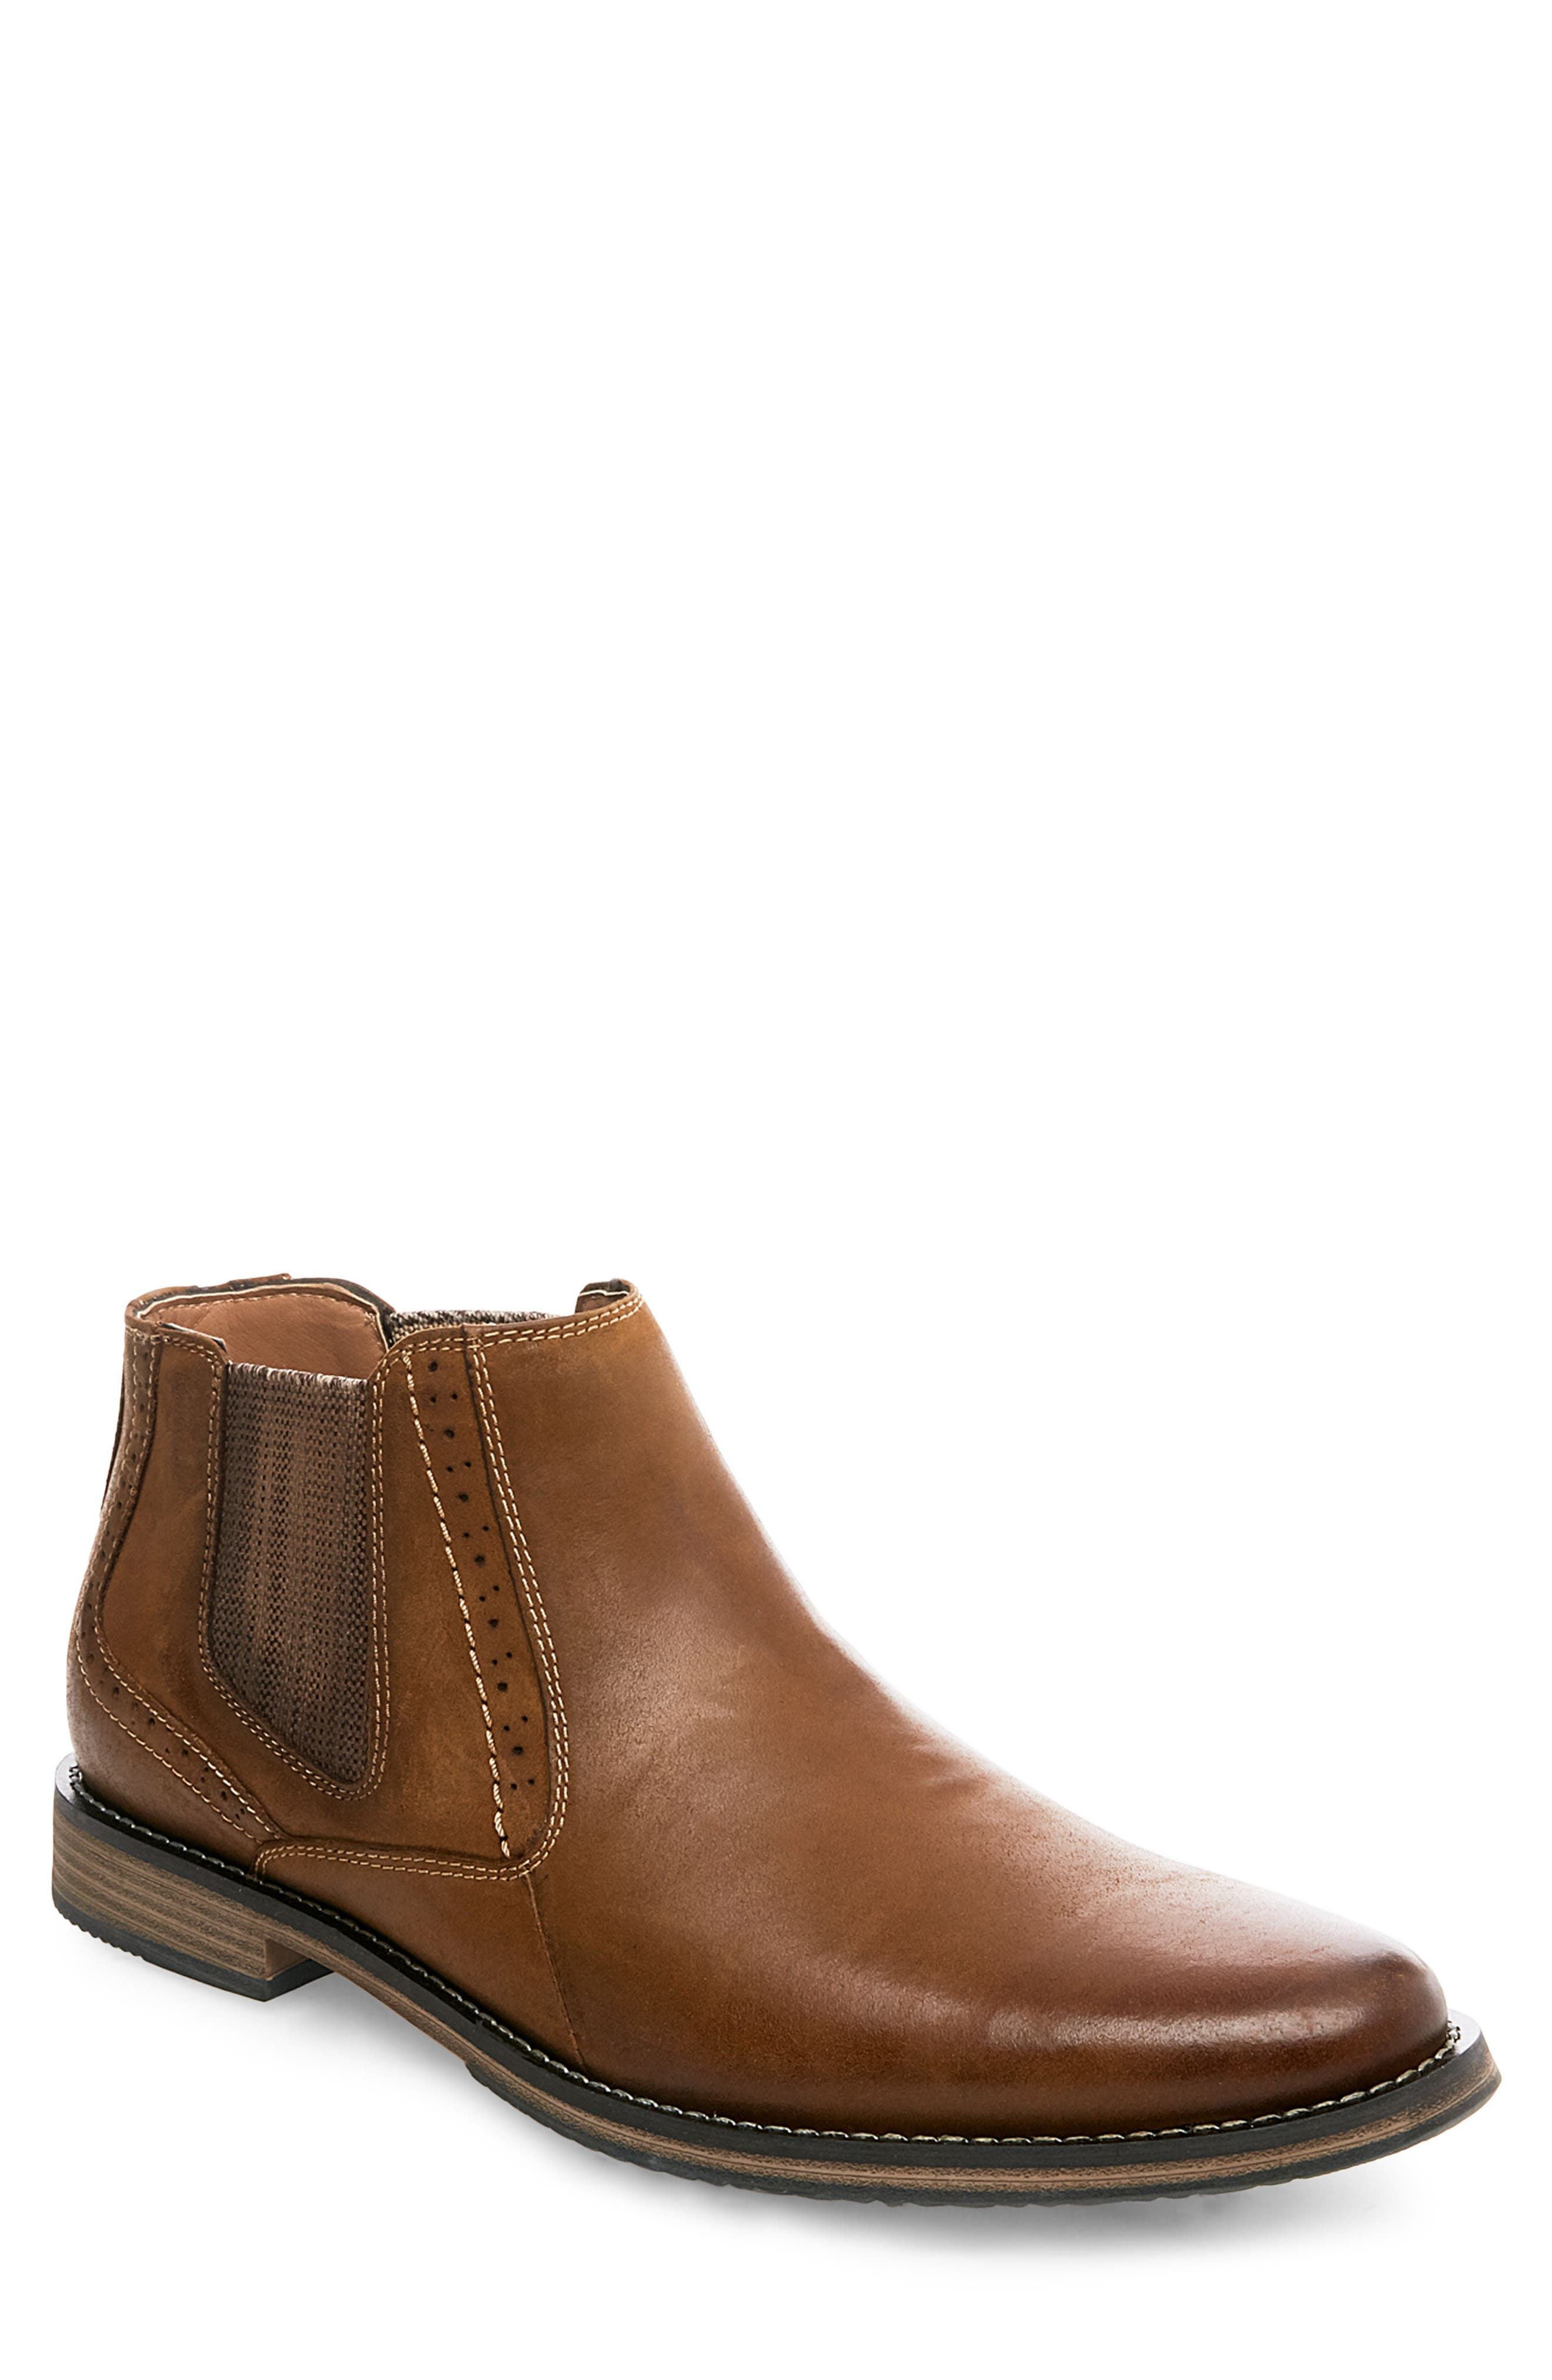 Paxton Chelsea Boot,                         Main,                         color, Camel Leather